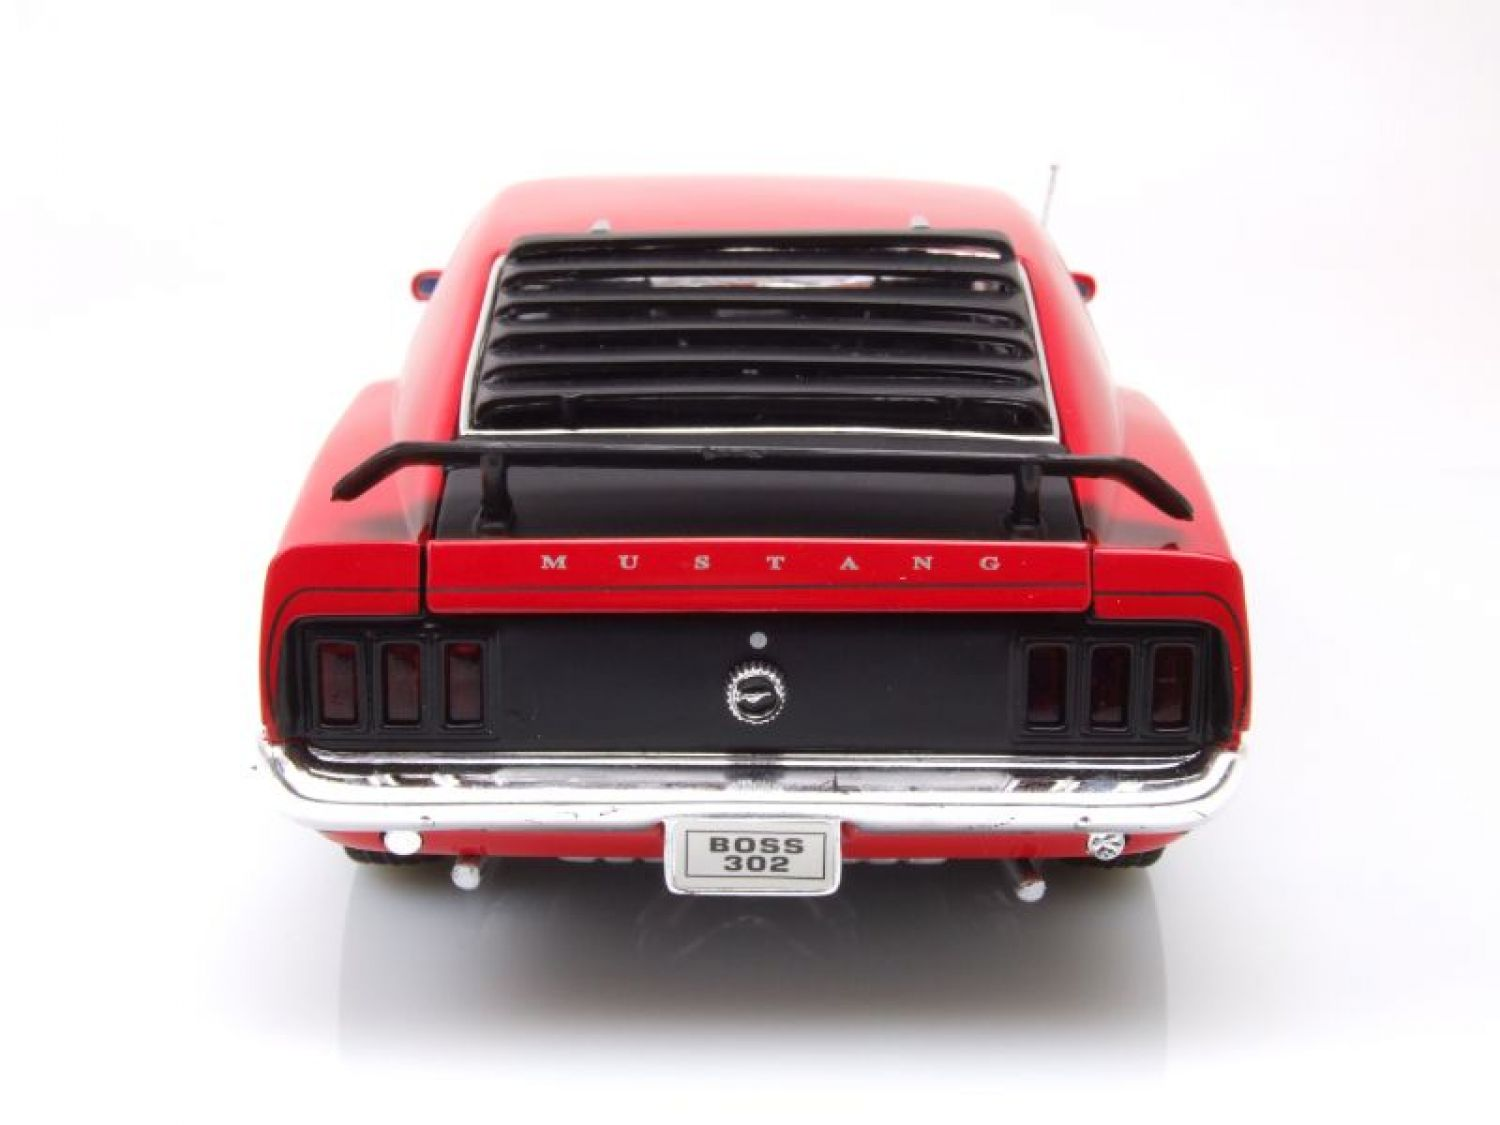 Ford Mustang Boss 302 1970 rot, Modellauto 1:18 / Welly | eBay